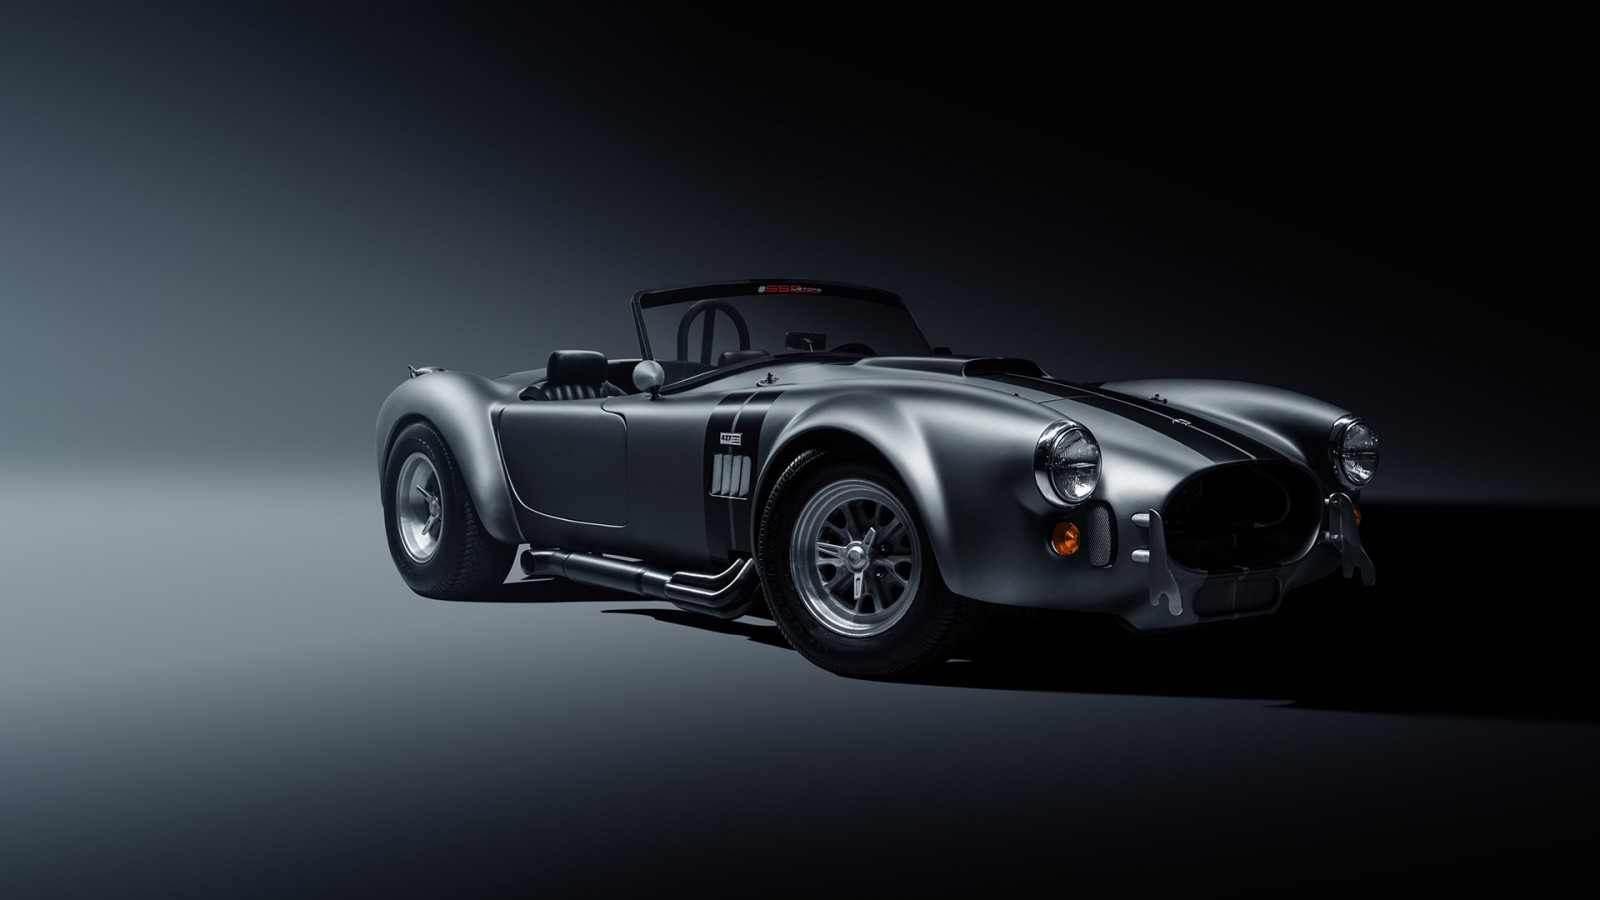 Race Car Wallpaper 1080p Shelby Cobra Ss Customs Wallpaper Hd Car Wallpapers Id